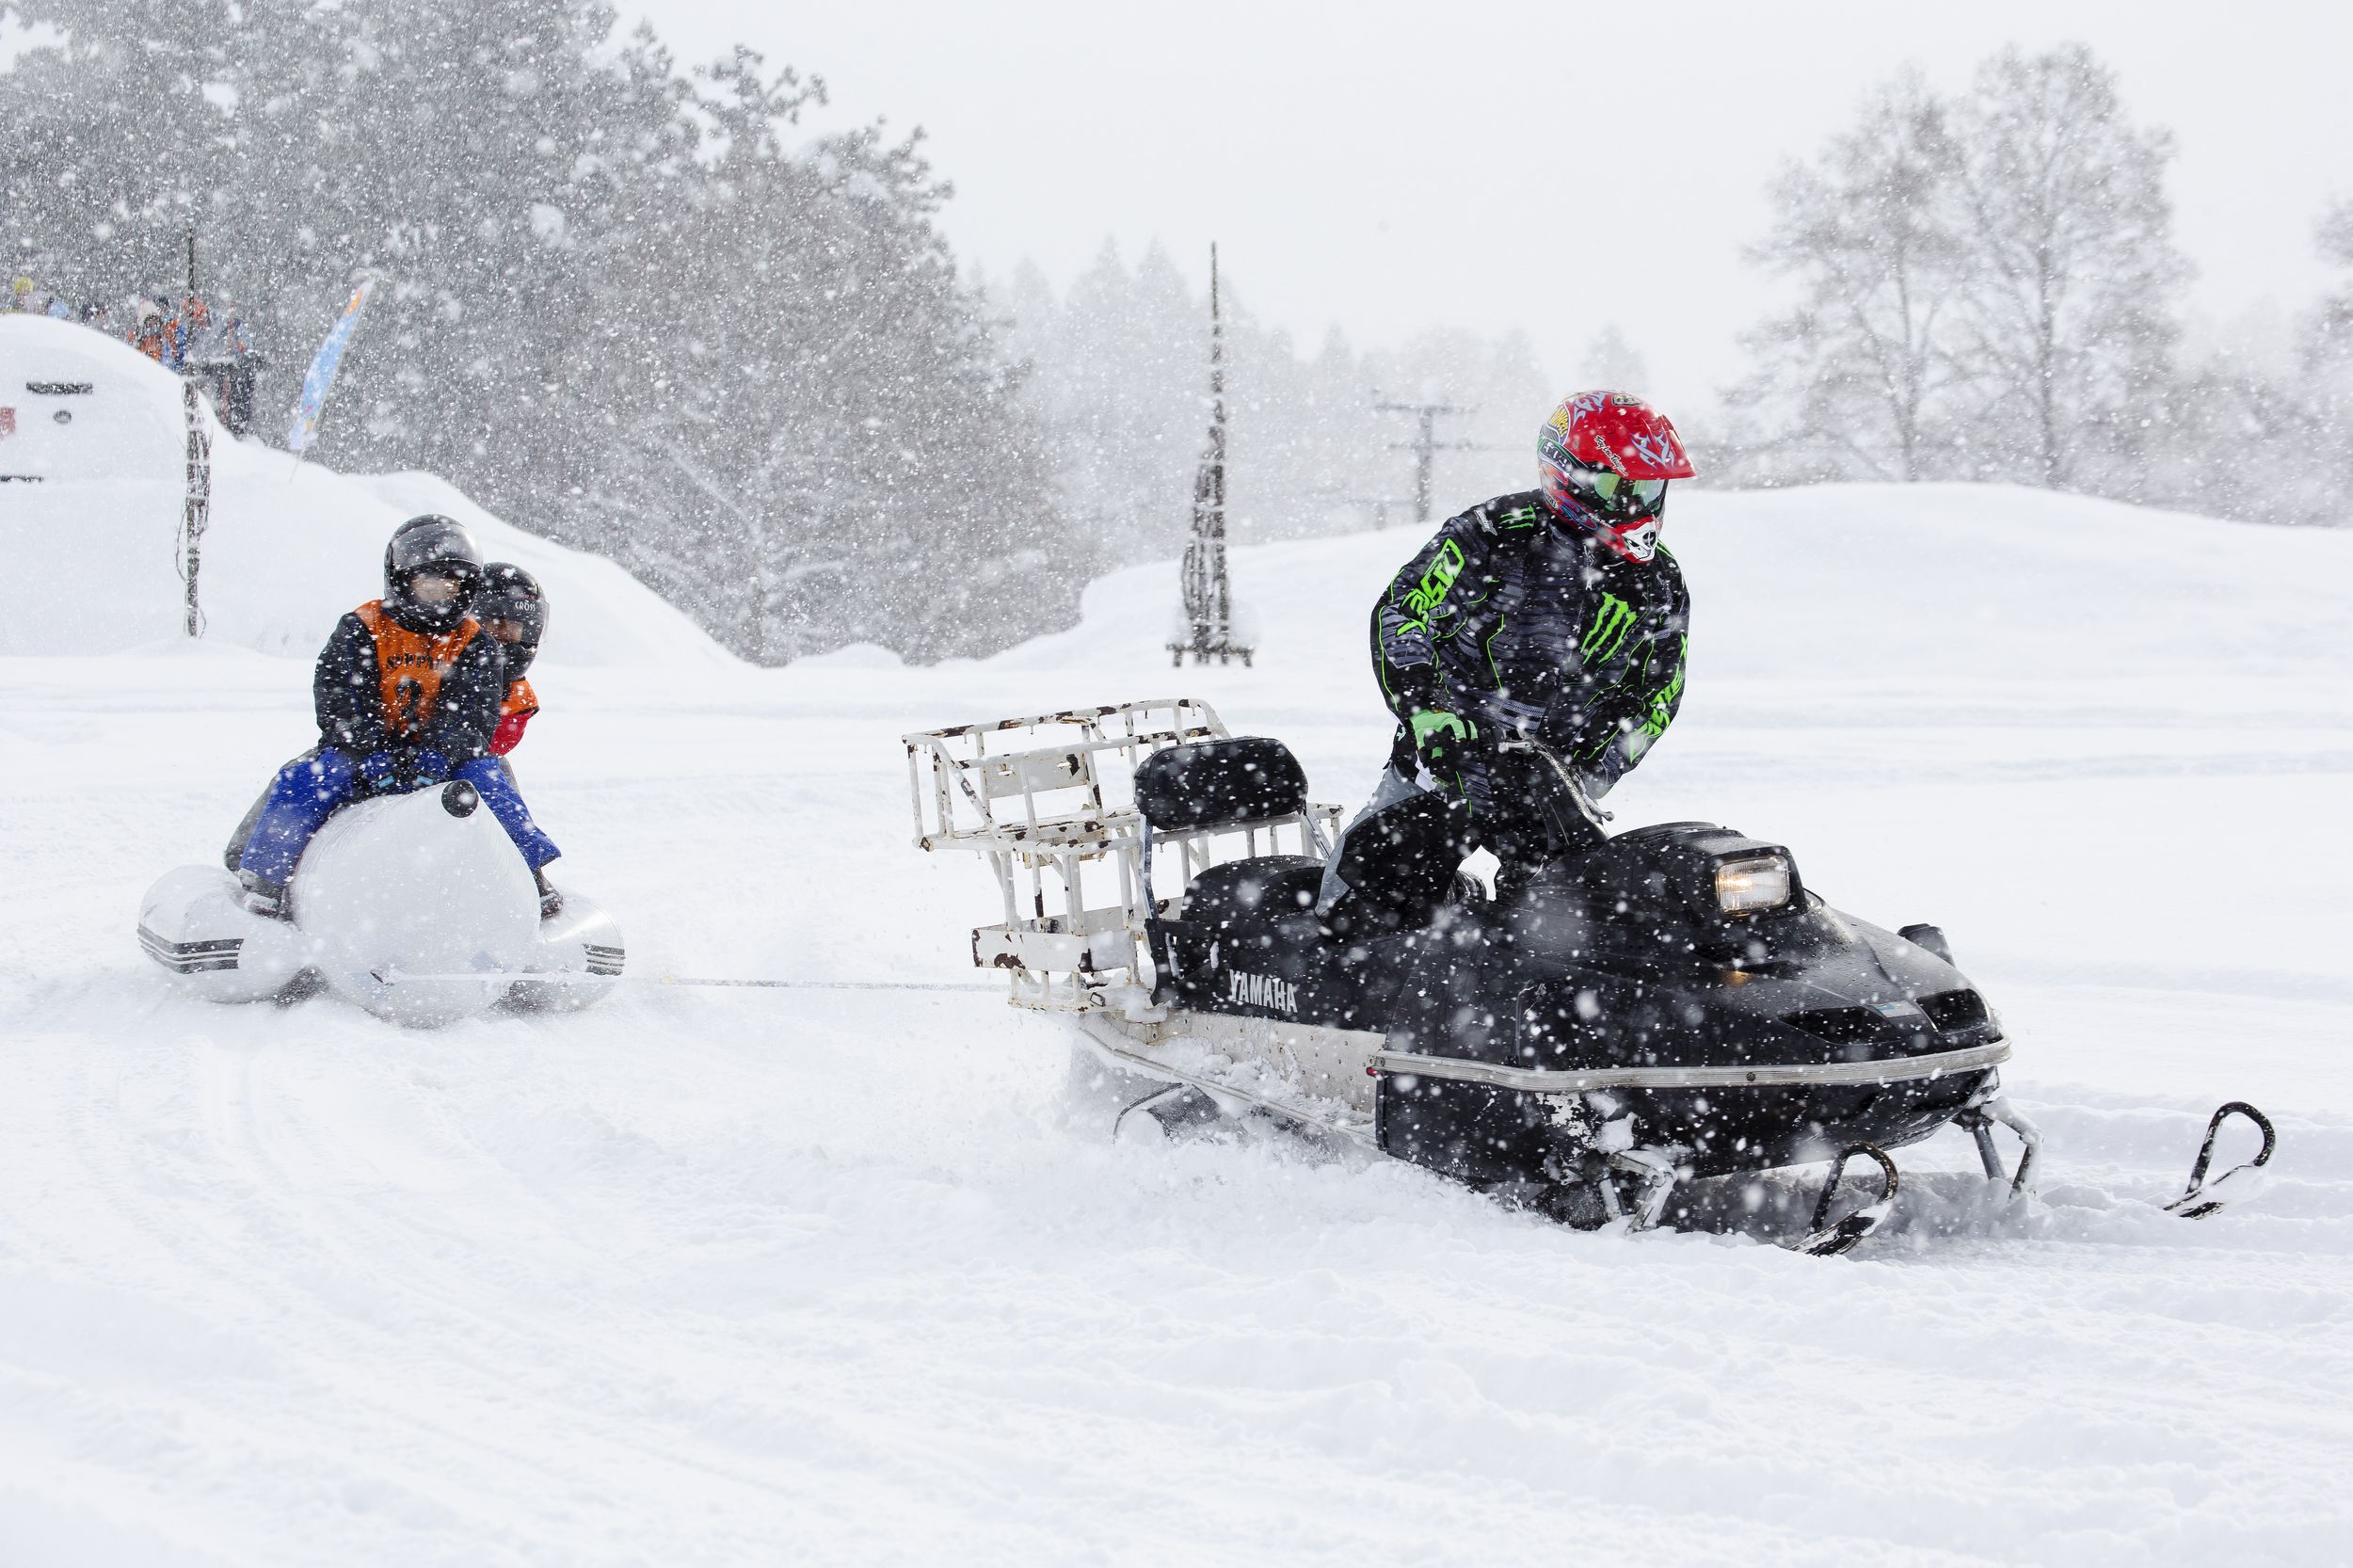 Try a thrilling snowmobile